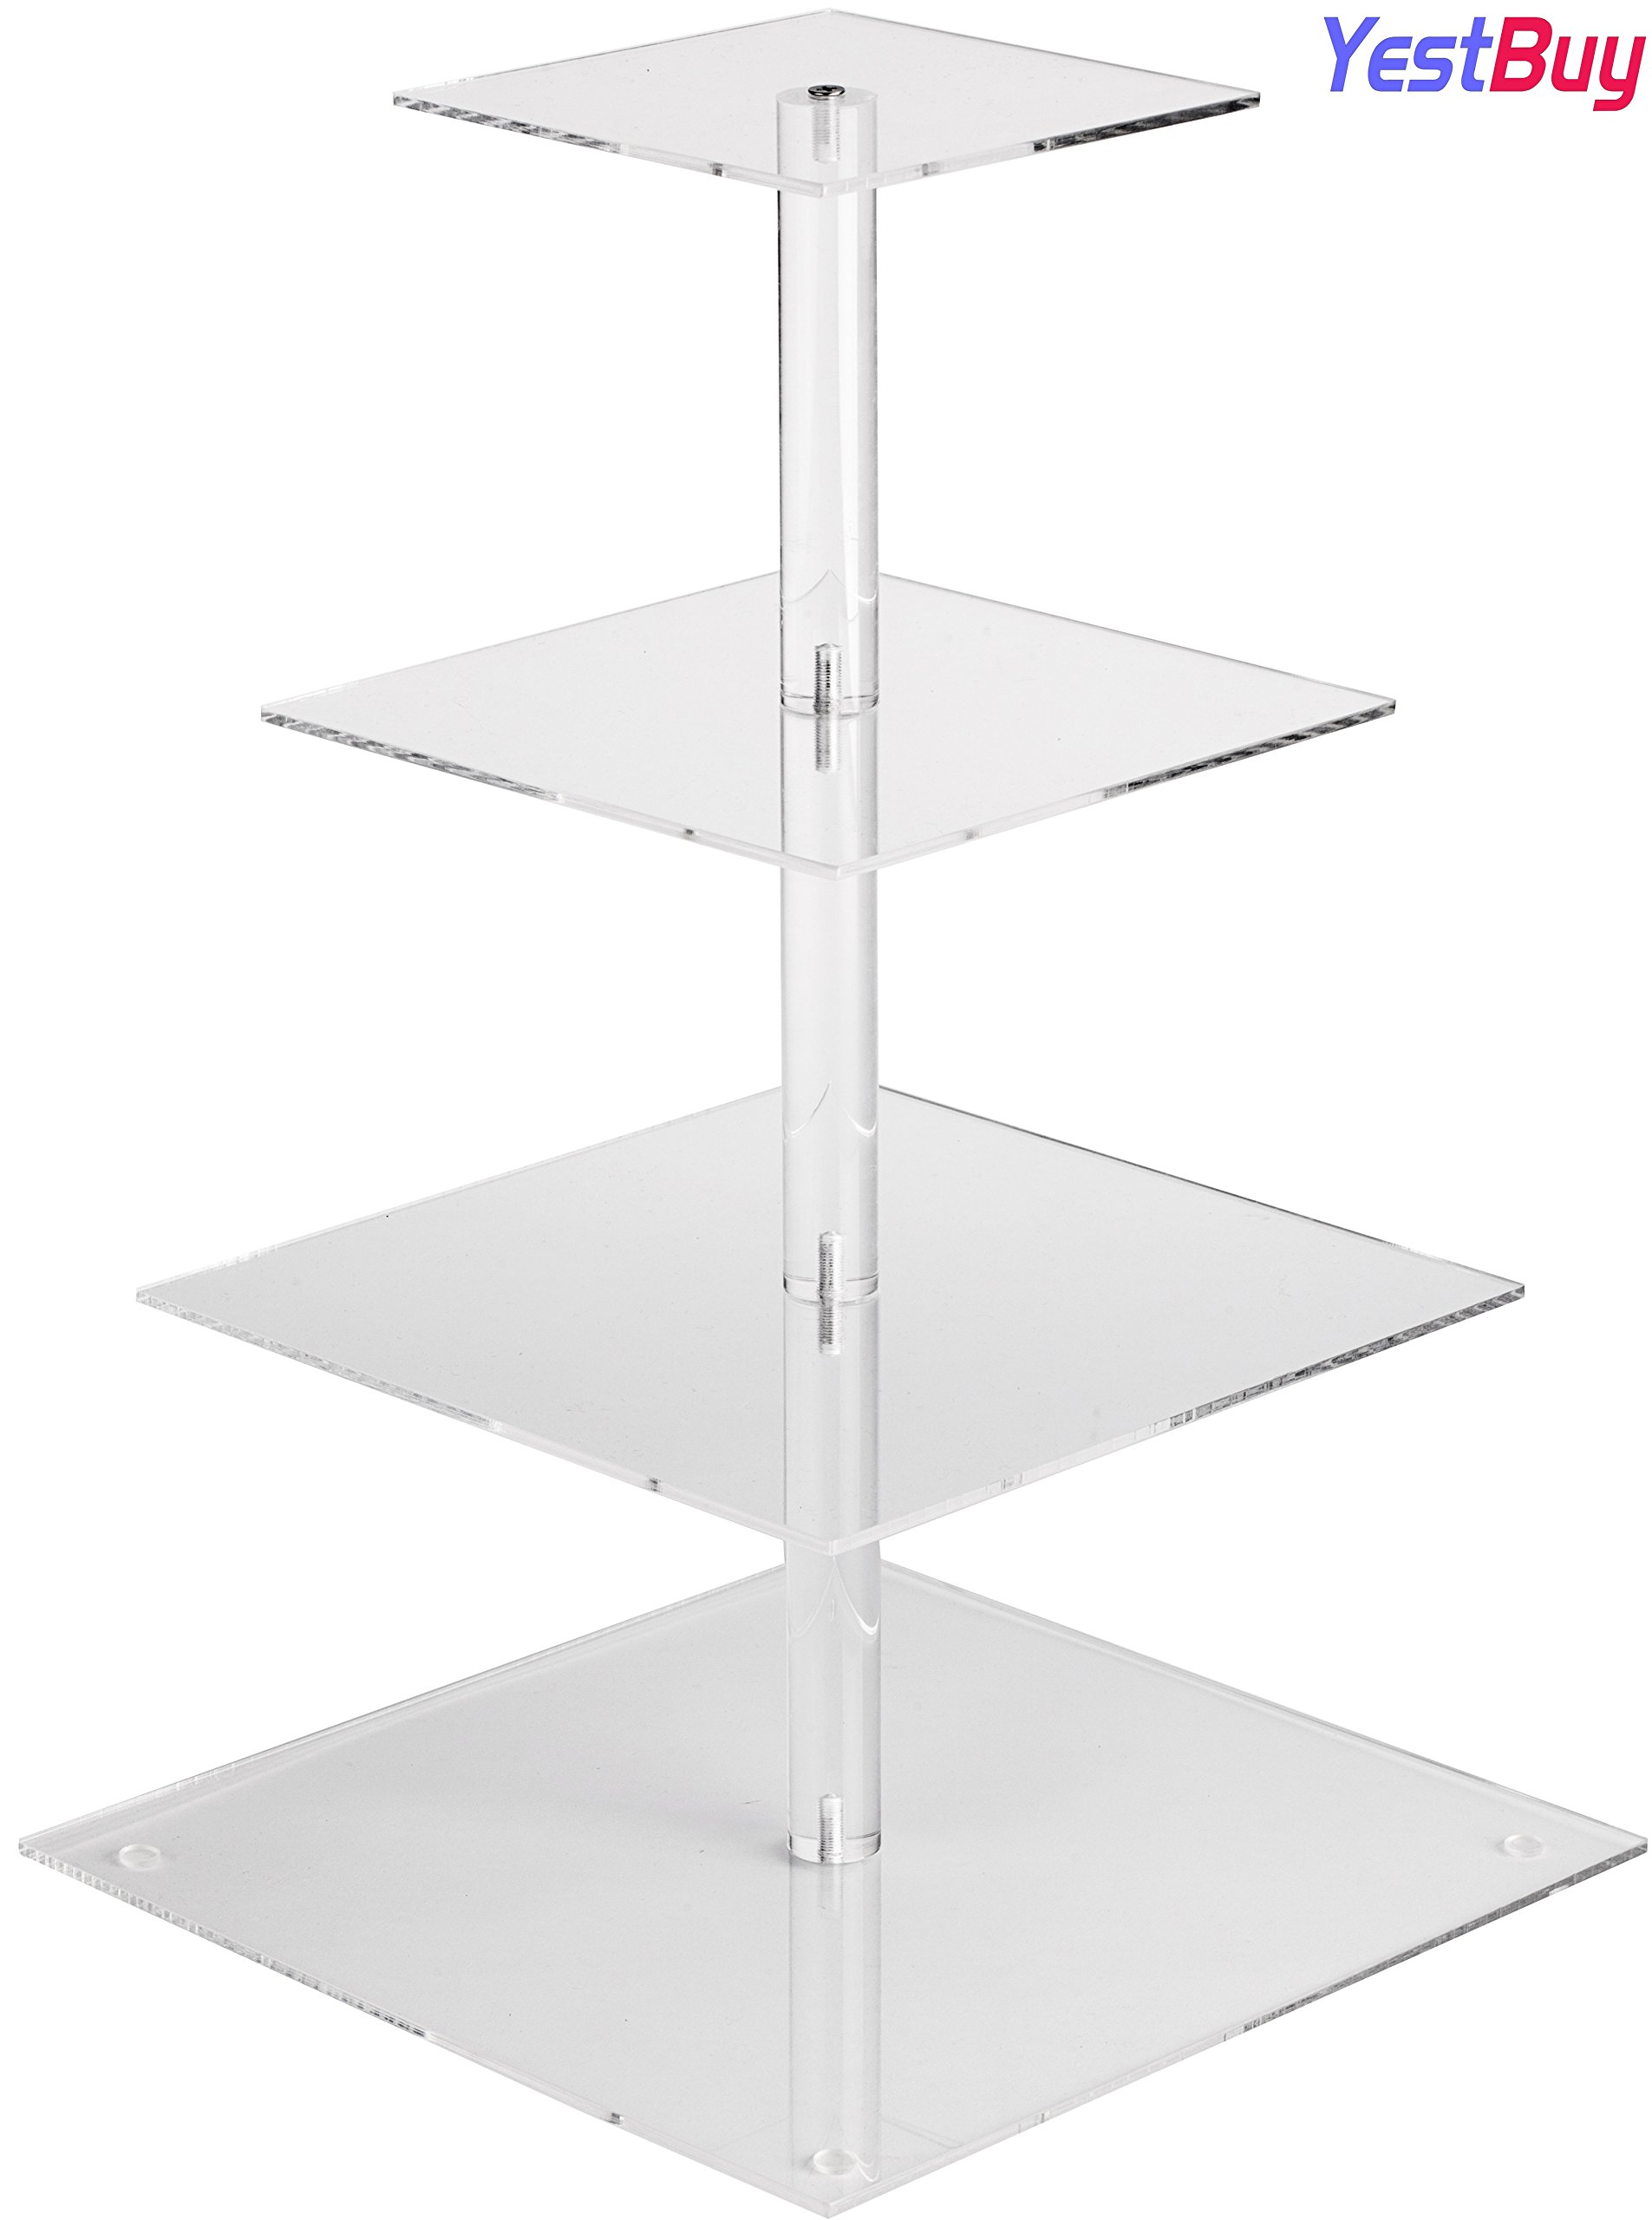 YestBuy 4 Tier Maypole Square Wedding Party Tree Tower Acrylic Cupcake Display Stand (18.7 Inches) …